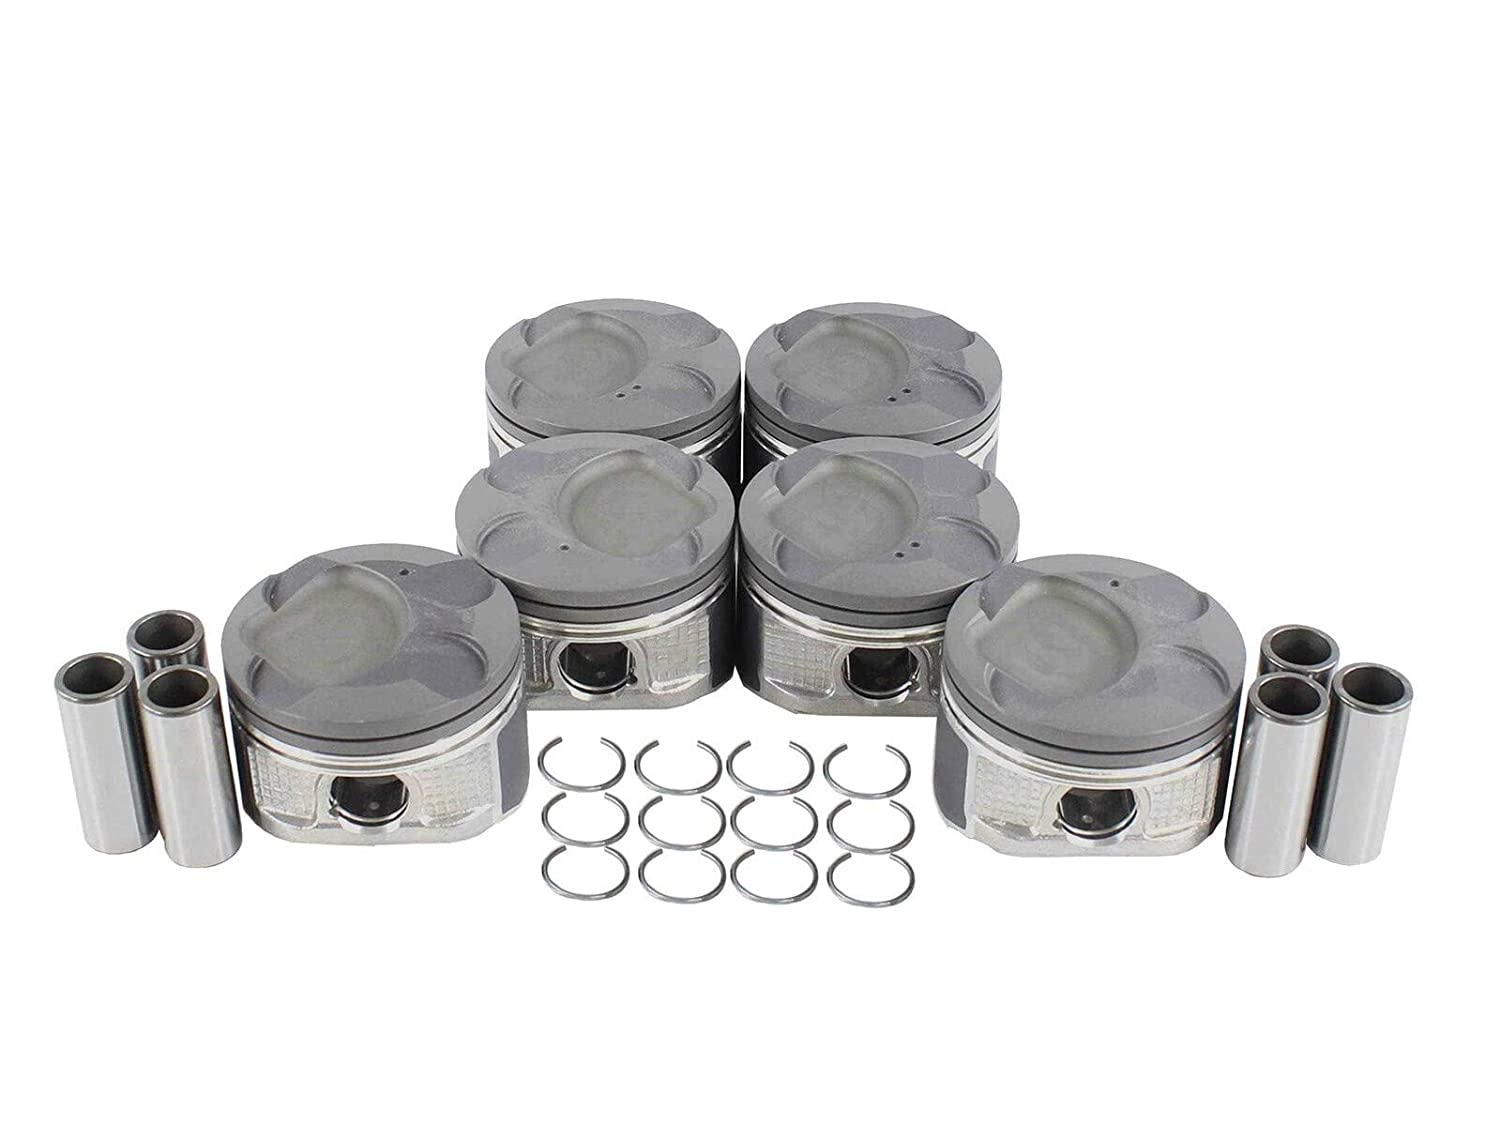 1 Set of Piston Reservation STD Size Lexus with 06-15 Compatible half IS250 2.5L